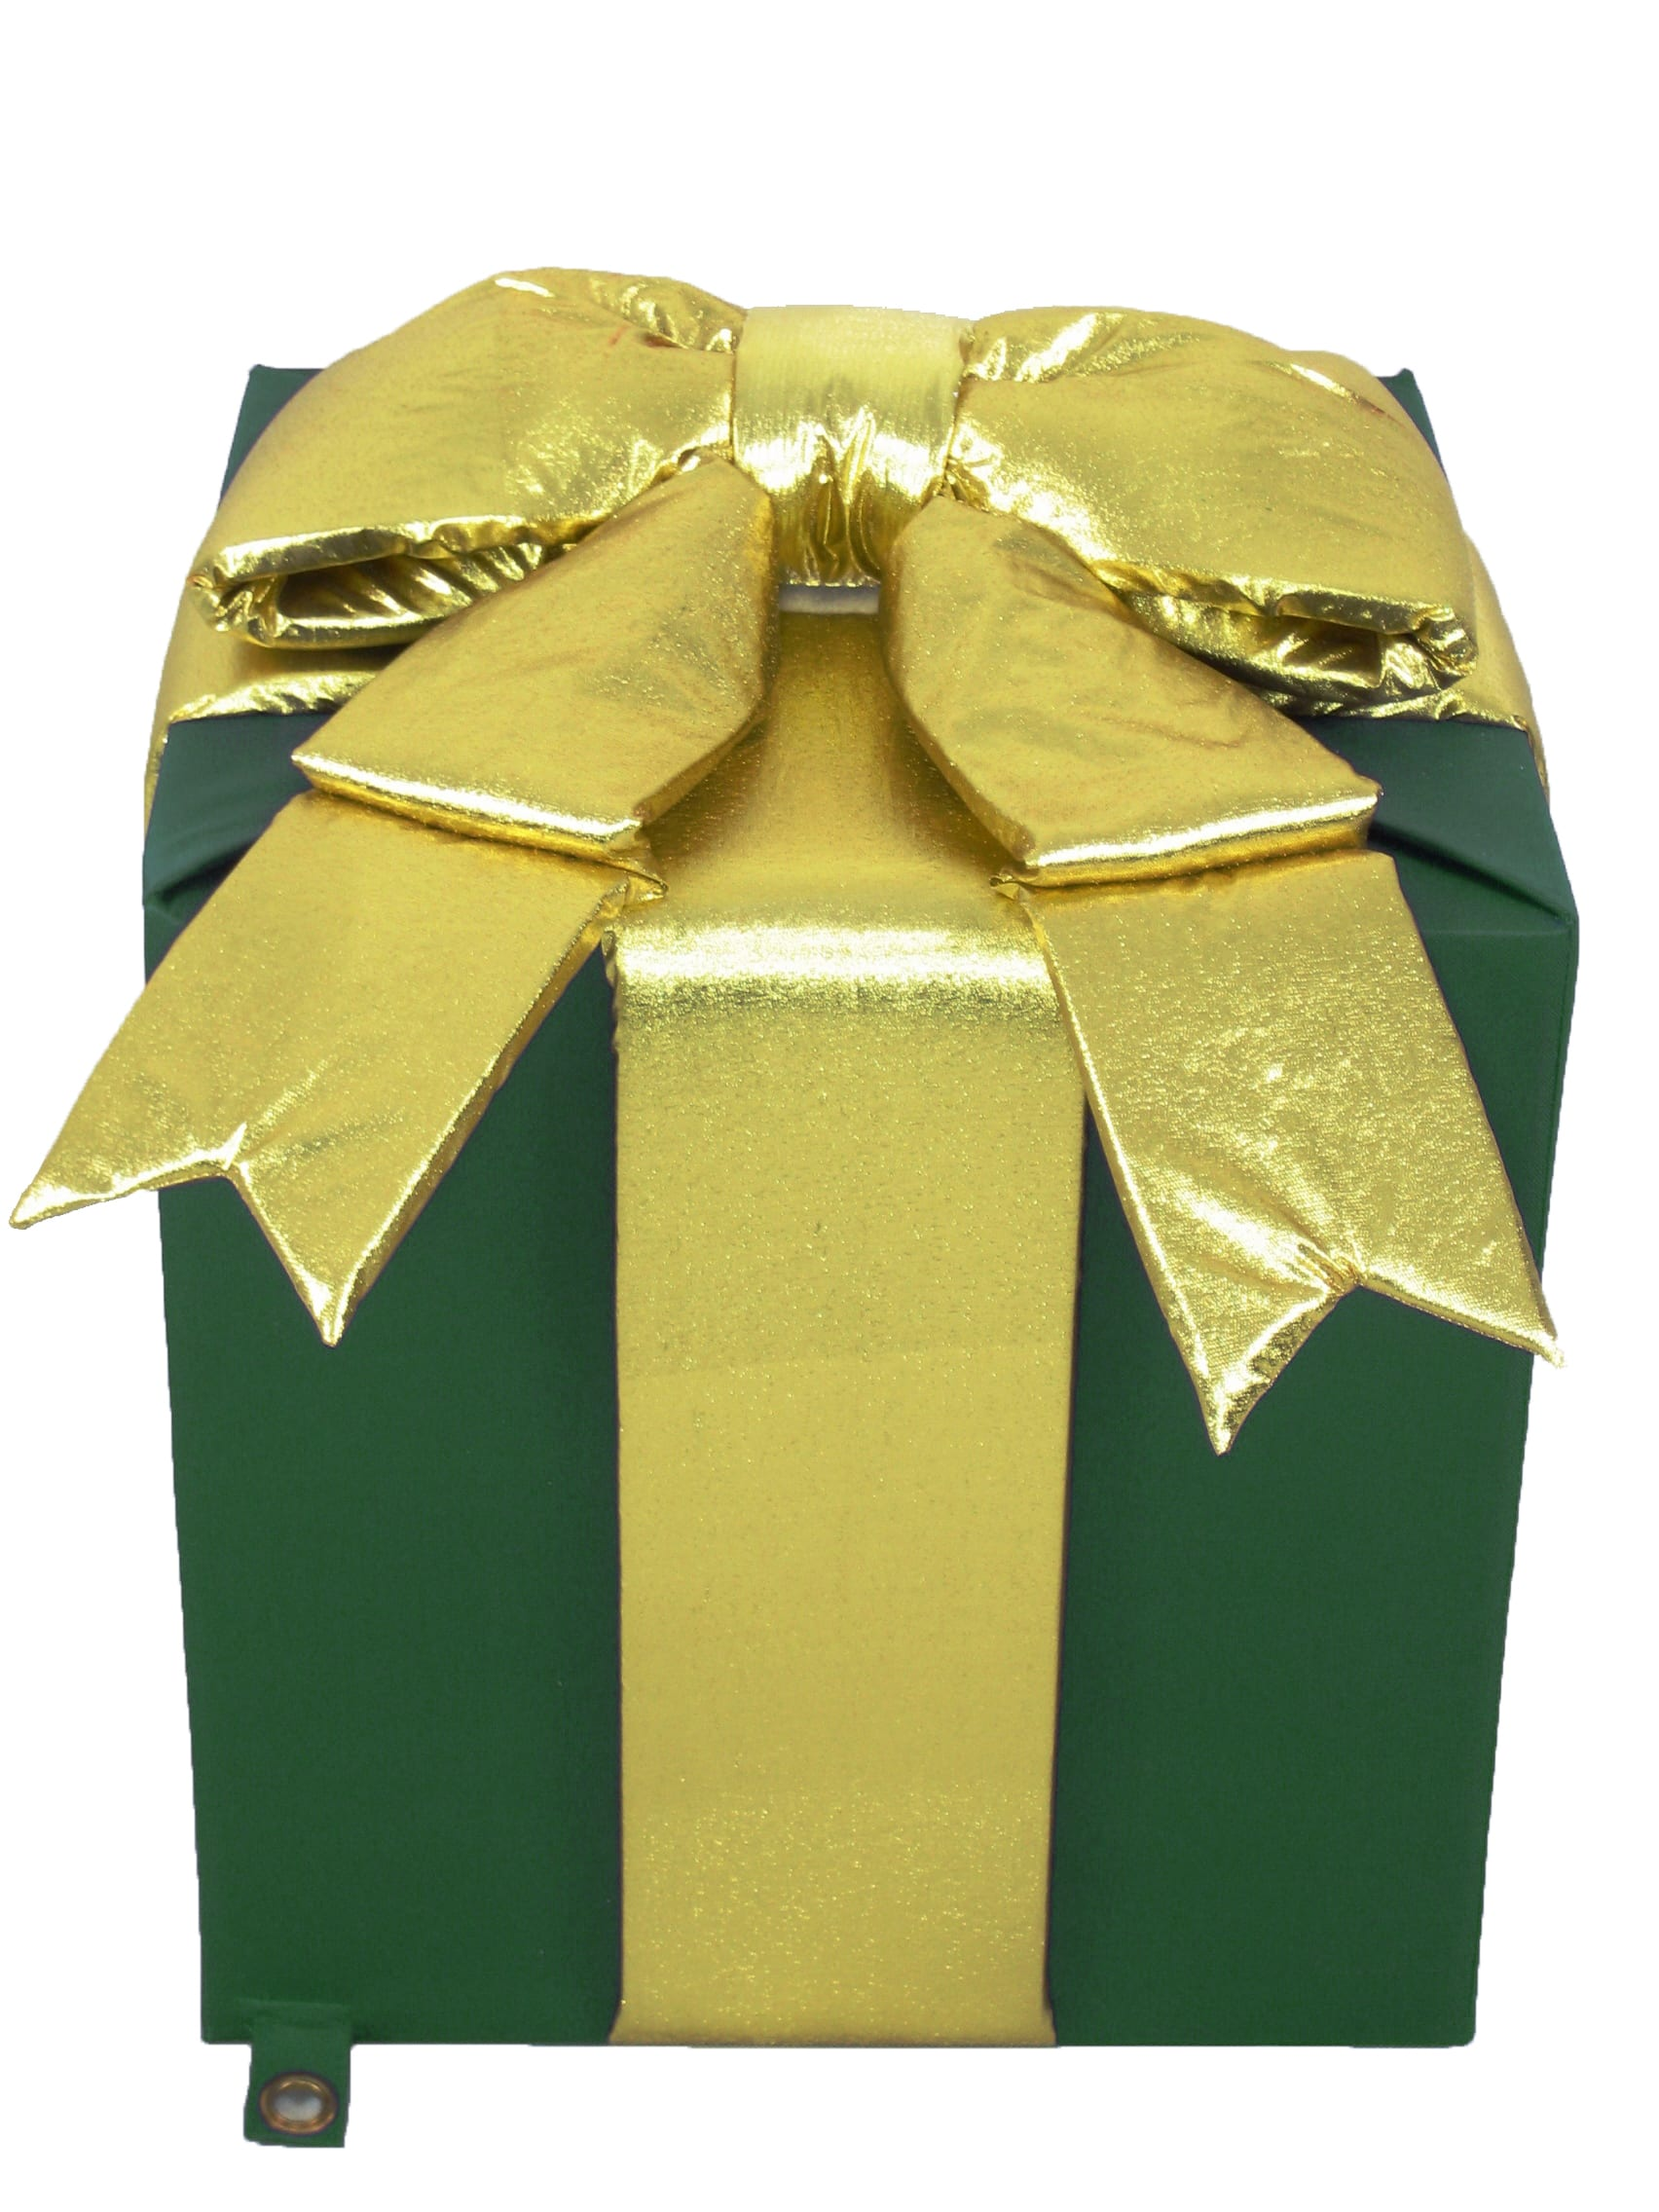 Christmas at Winterland WL-GIFT-44-GR Green / Gold Gift Boxes 44 Inch Fabric Giant Green Gift Box with Gold Bow Indoor / Outdoor WL-GIFT-44-GR